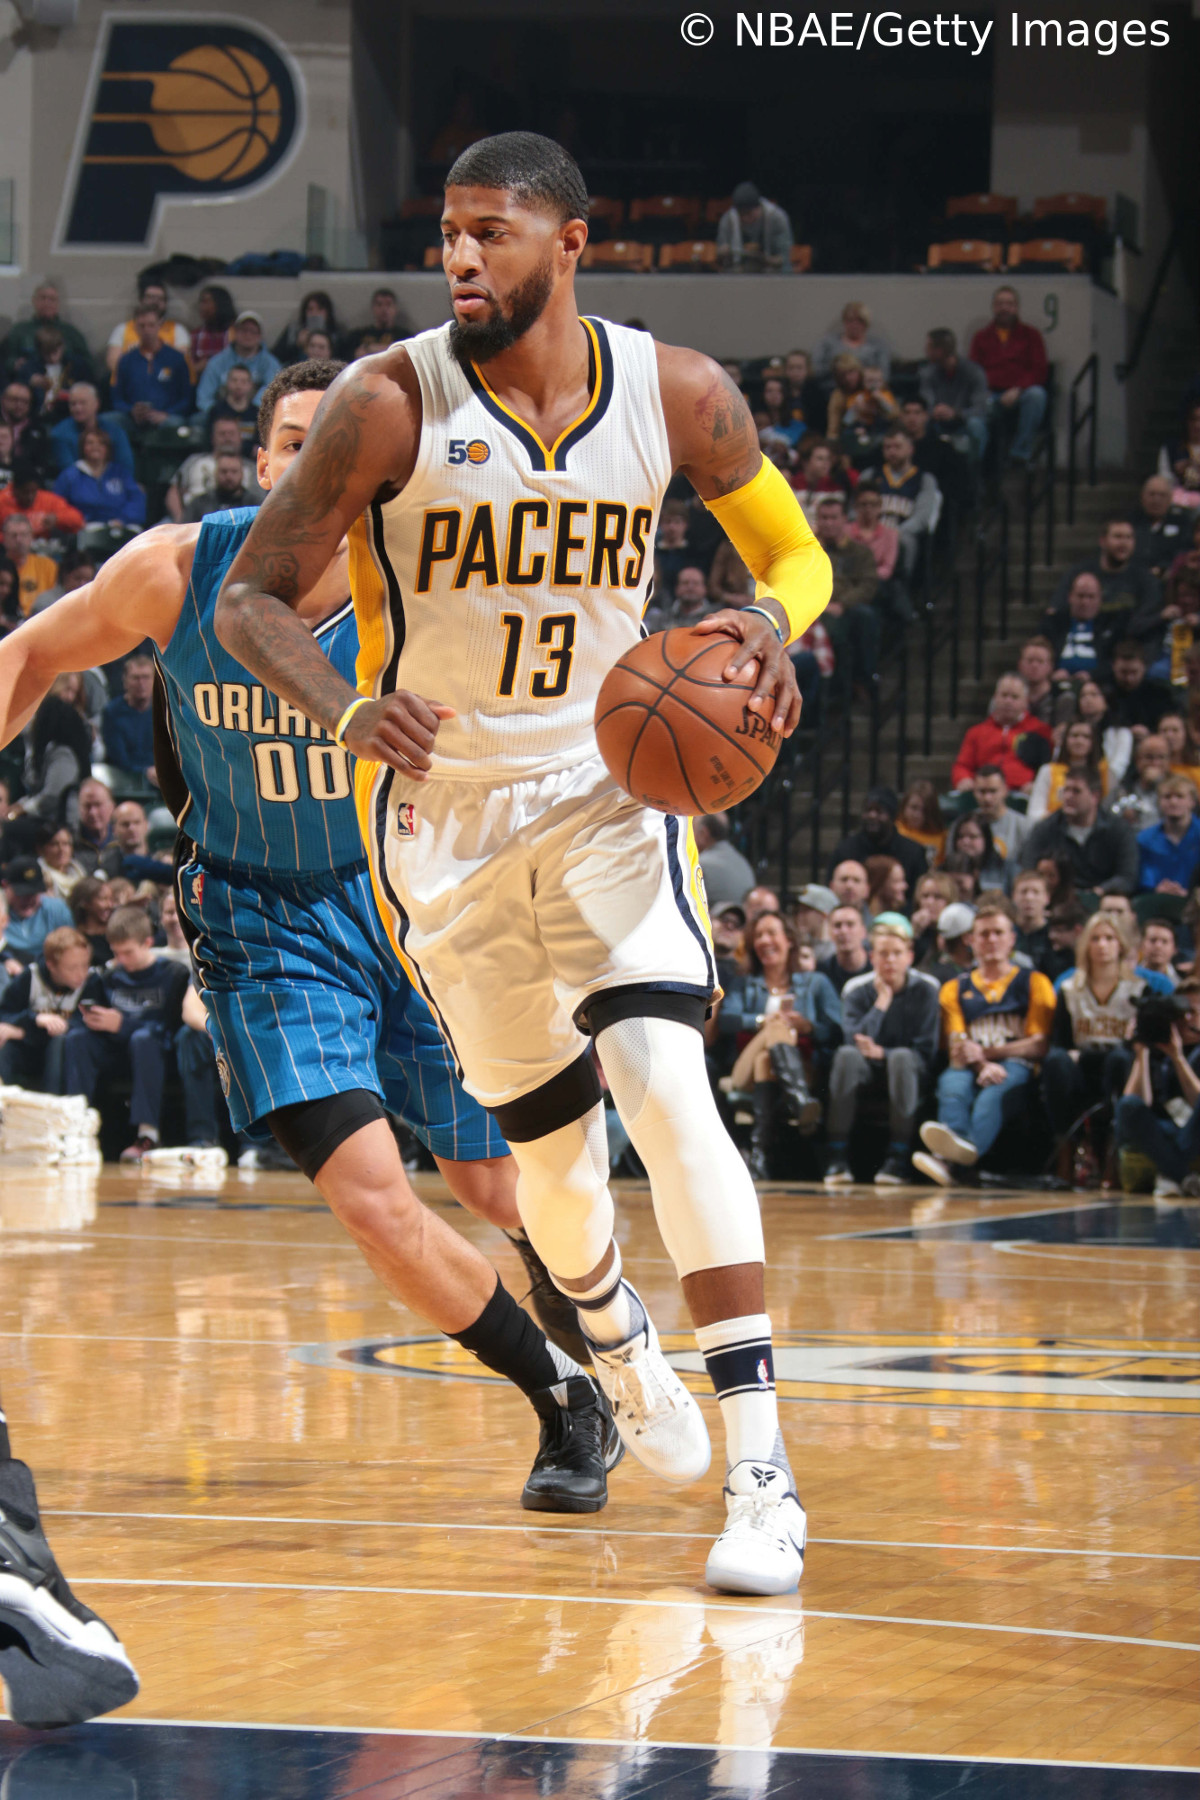 Video additionally 2015 16 Pacemates Bridget Team Uniform additionally Paul George Teams Up With Mvp Russell Westbrook As Pacers Thunder Reportedly Agree To Trade likewise 2016 17 Pacemates Nici Auditions in addition 2016 17 Pacemates Alexis Team Uniform. on victor oladipo indiana